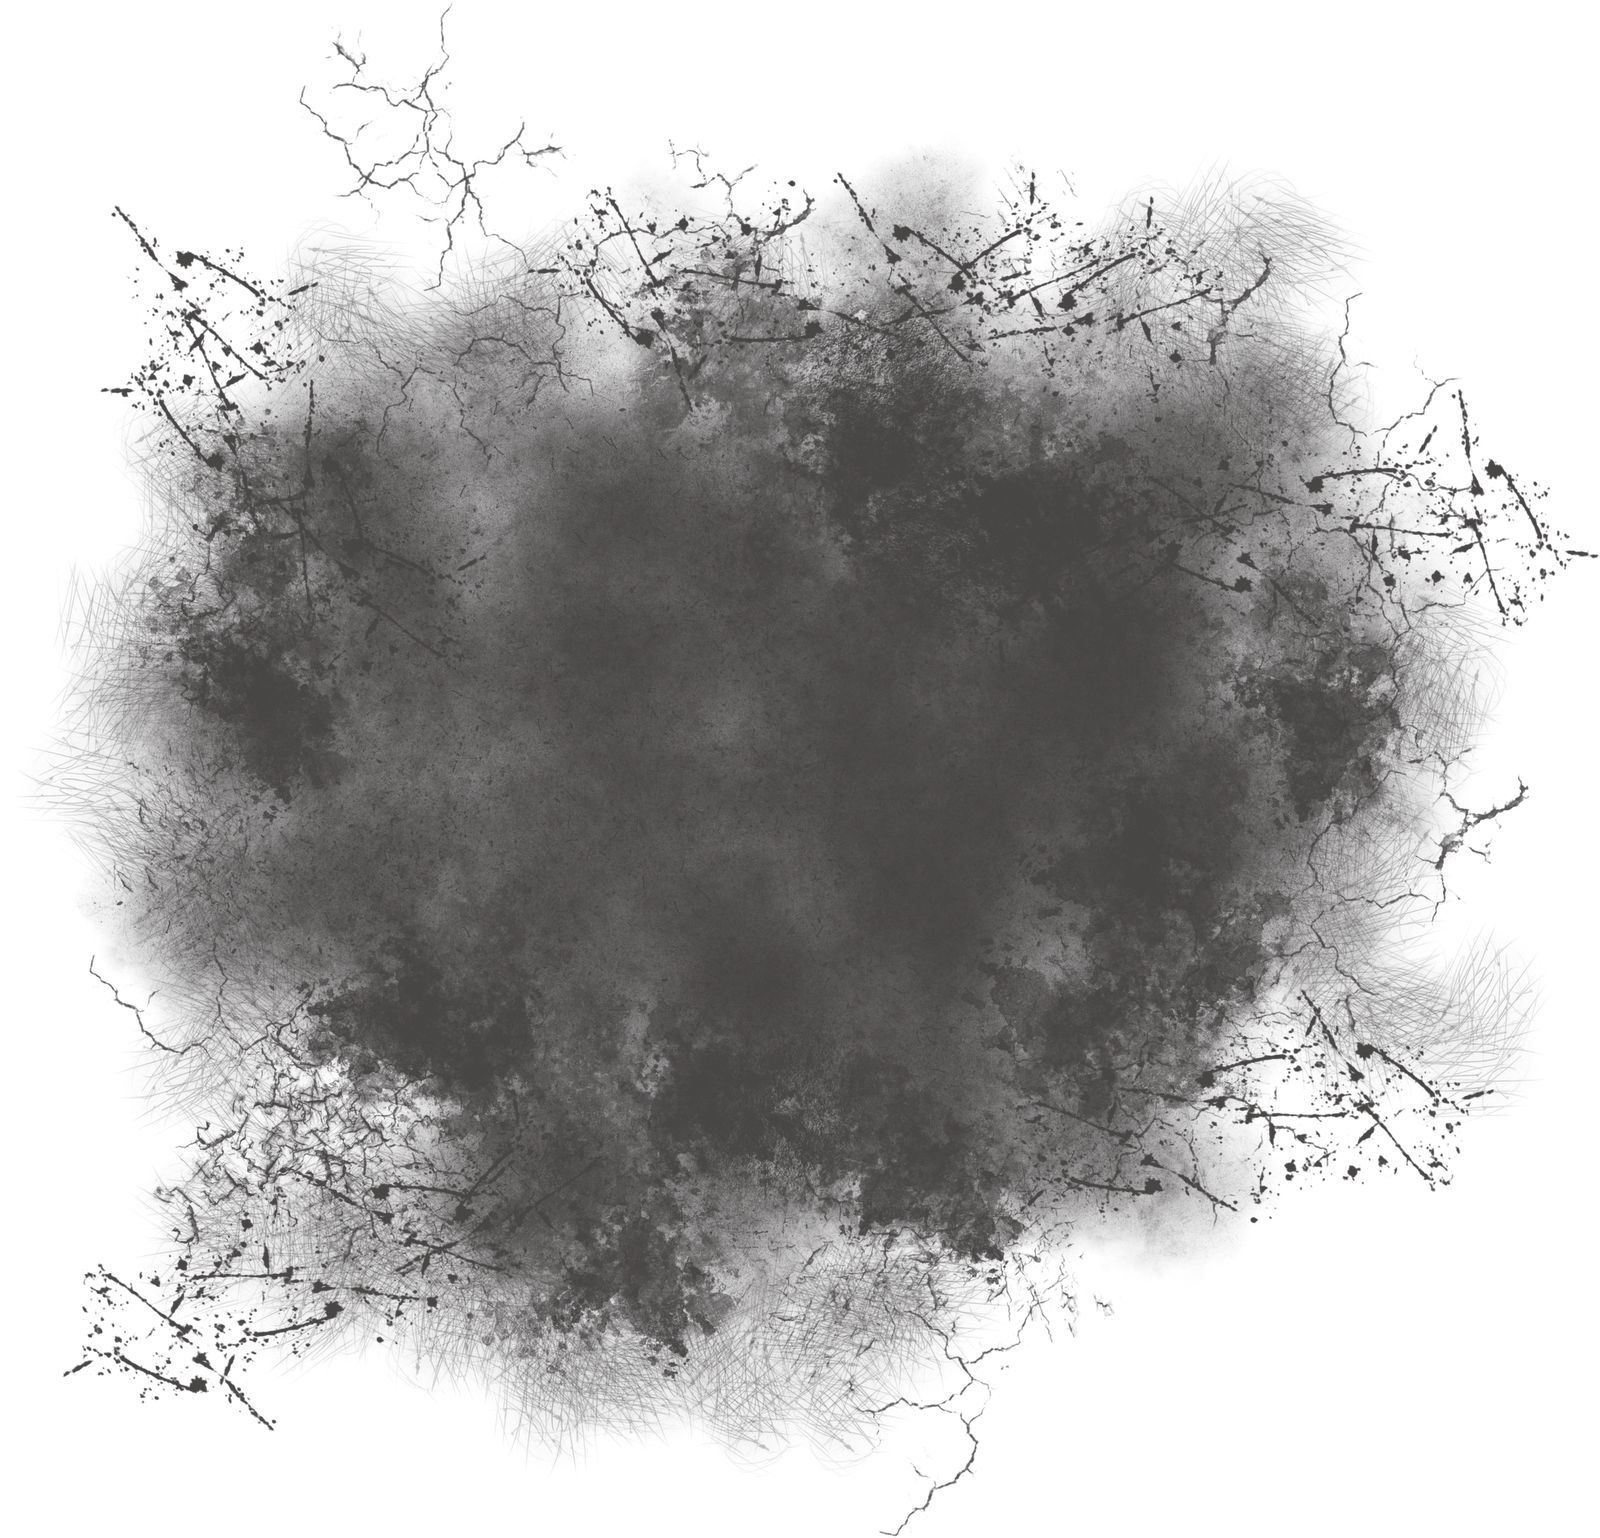 Black grunge png. Arts